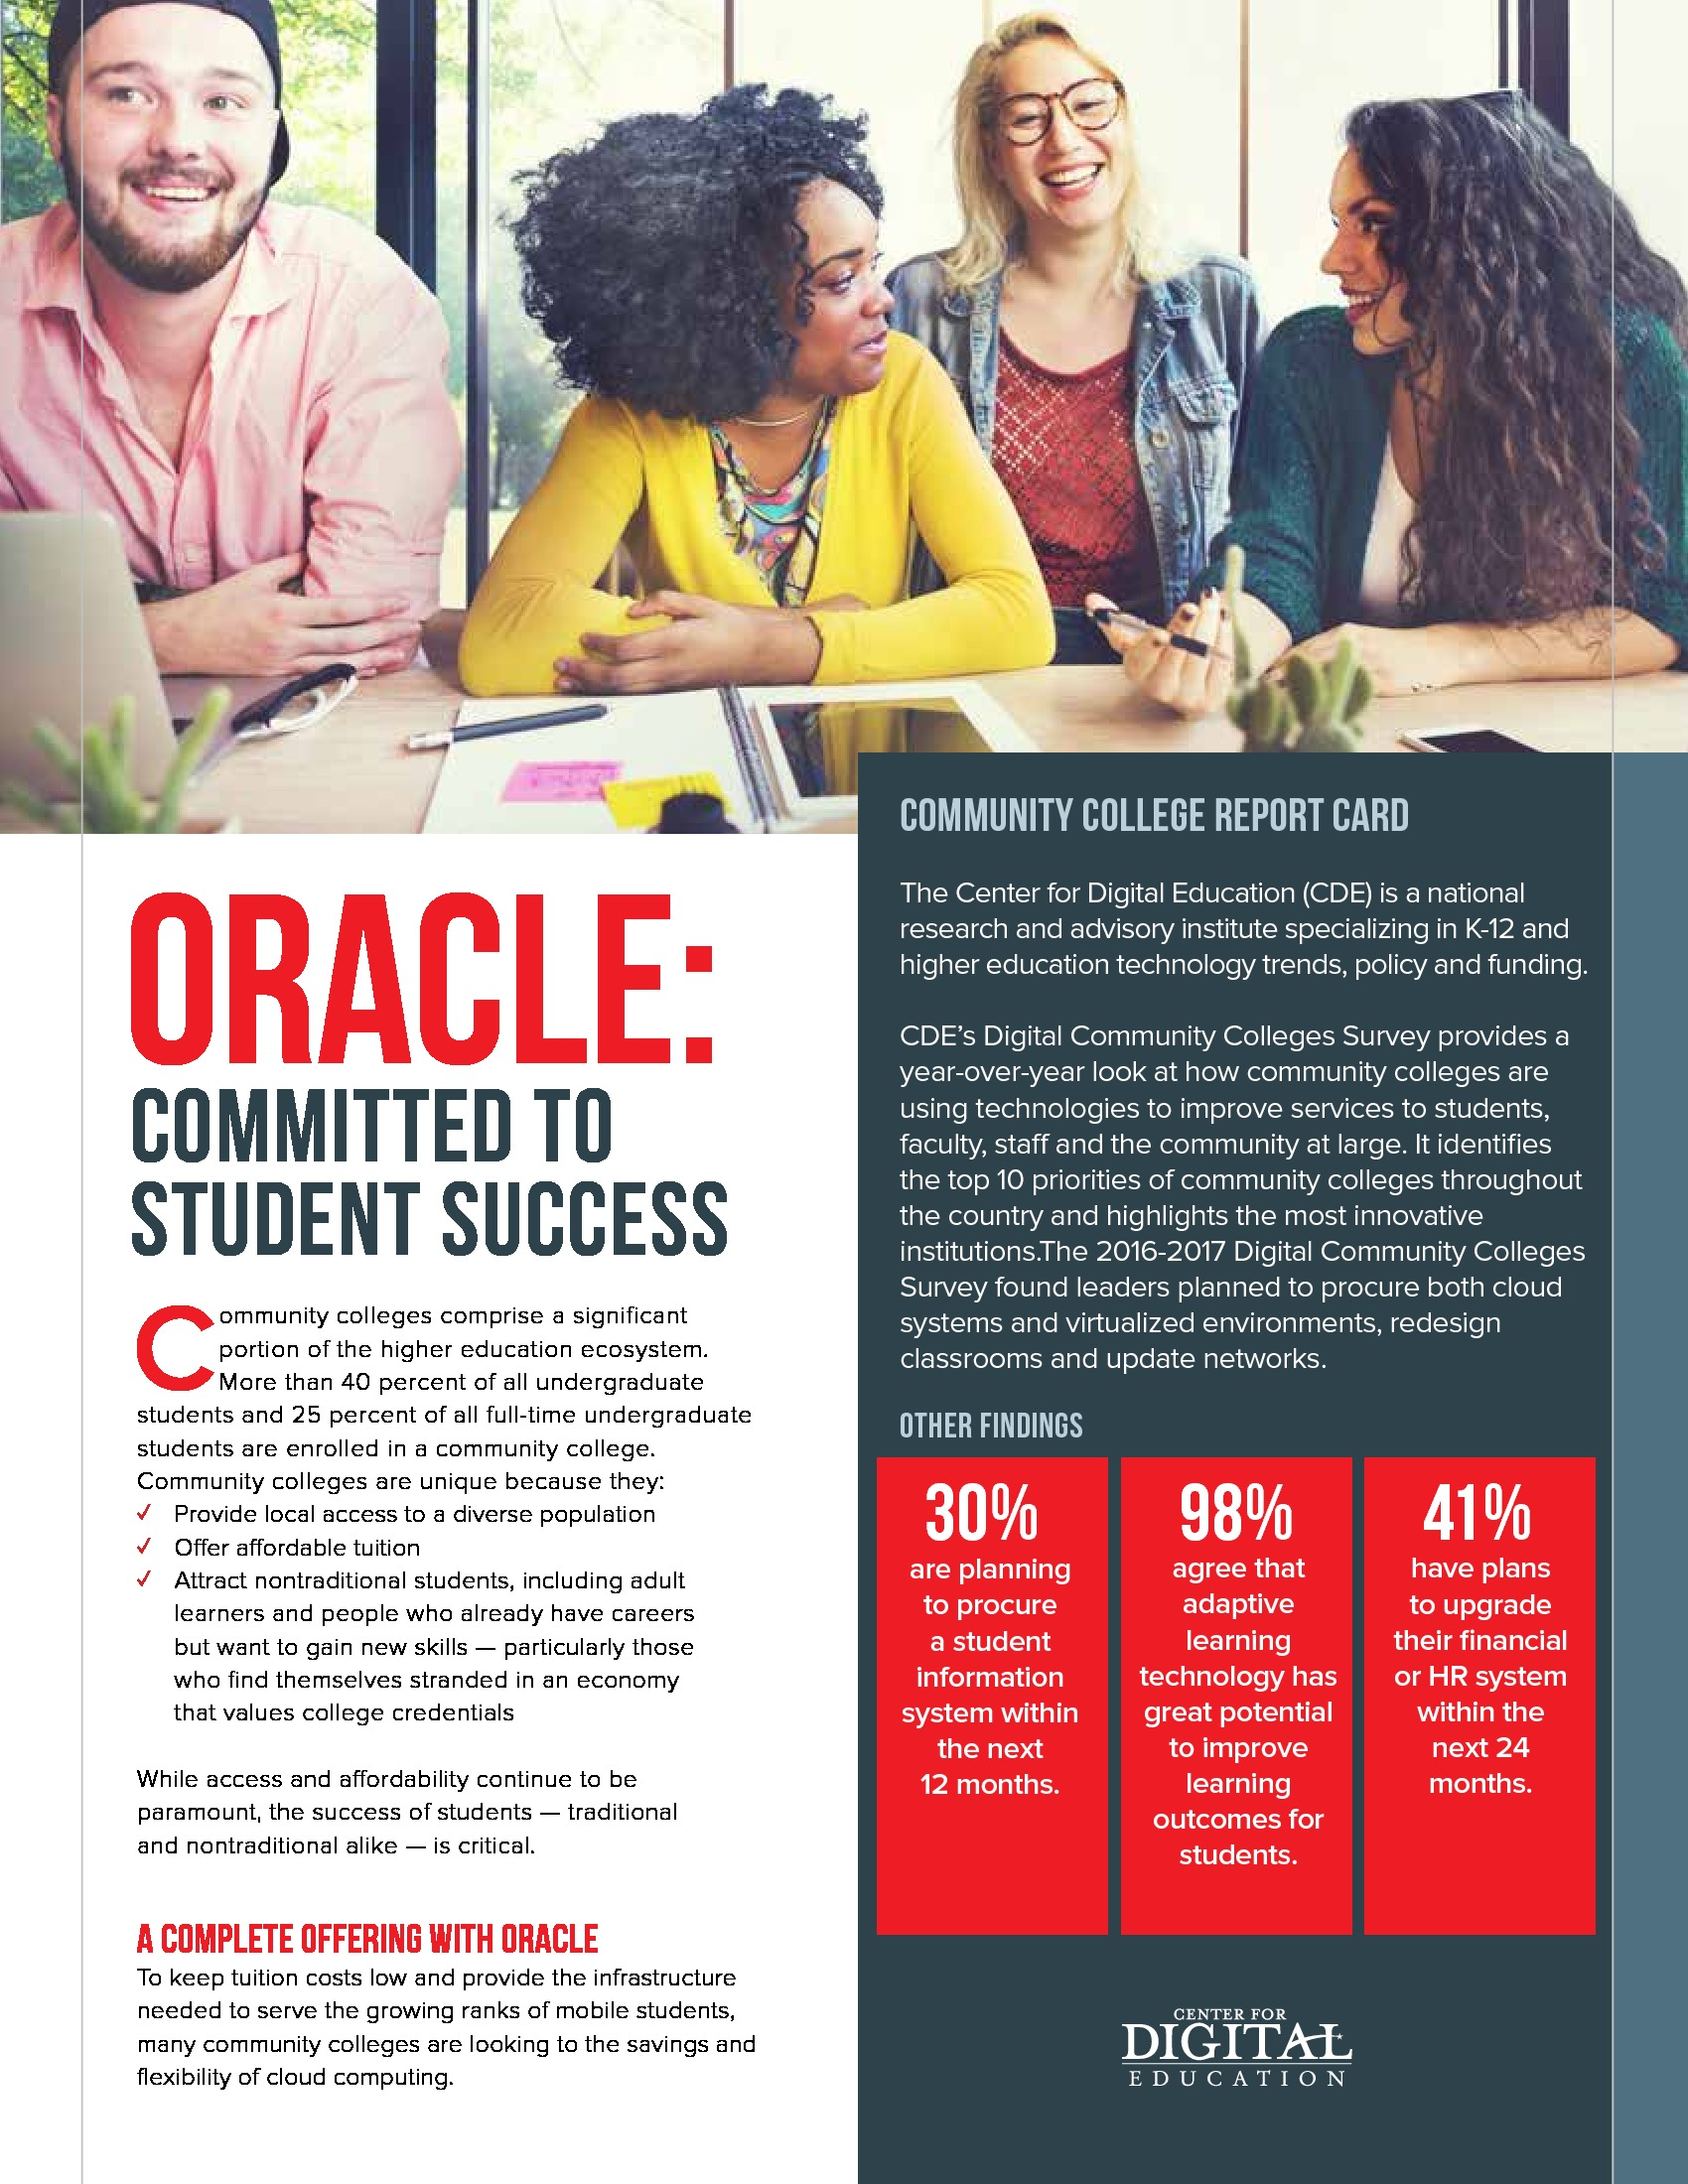 Oracle: Committed to Student Success